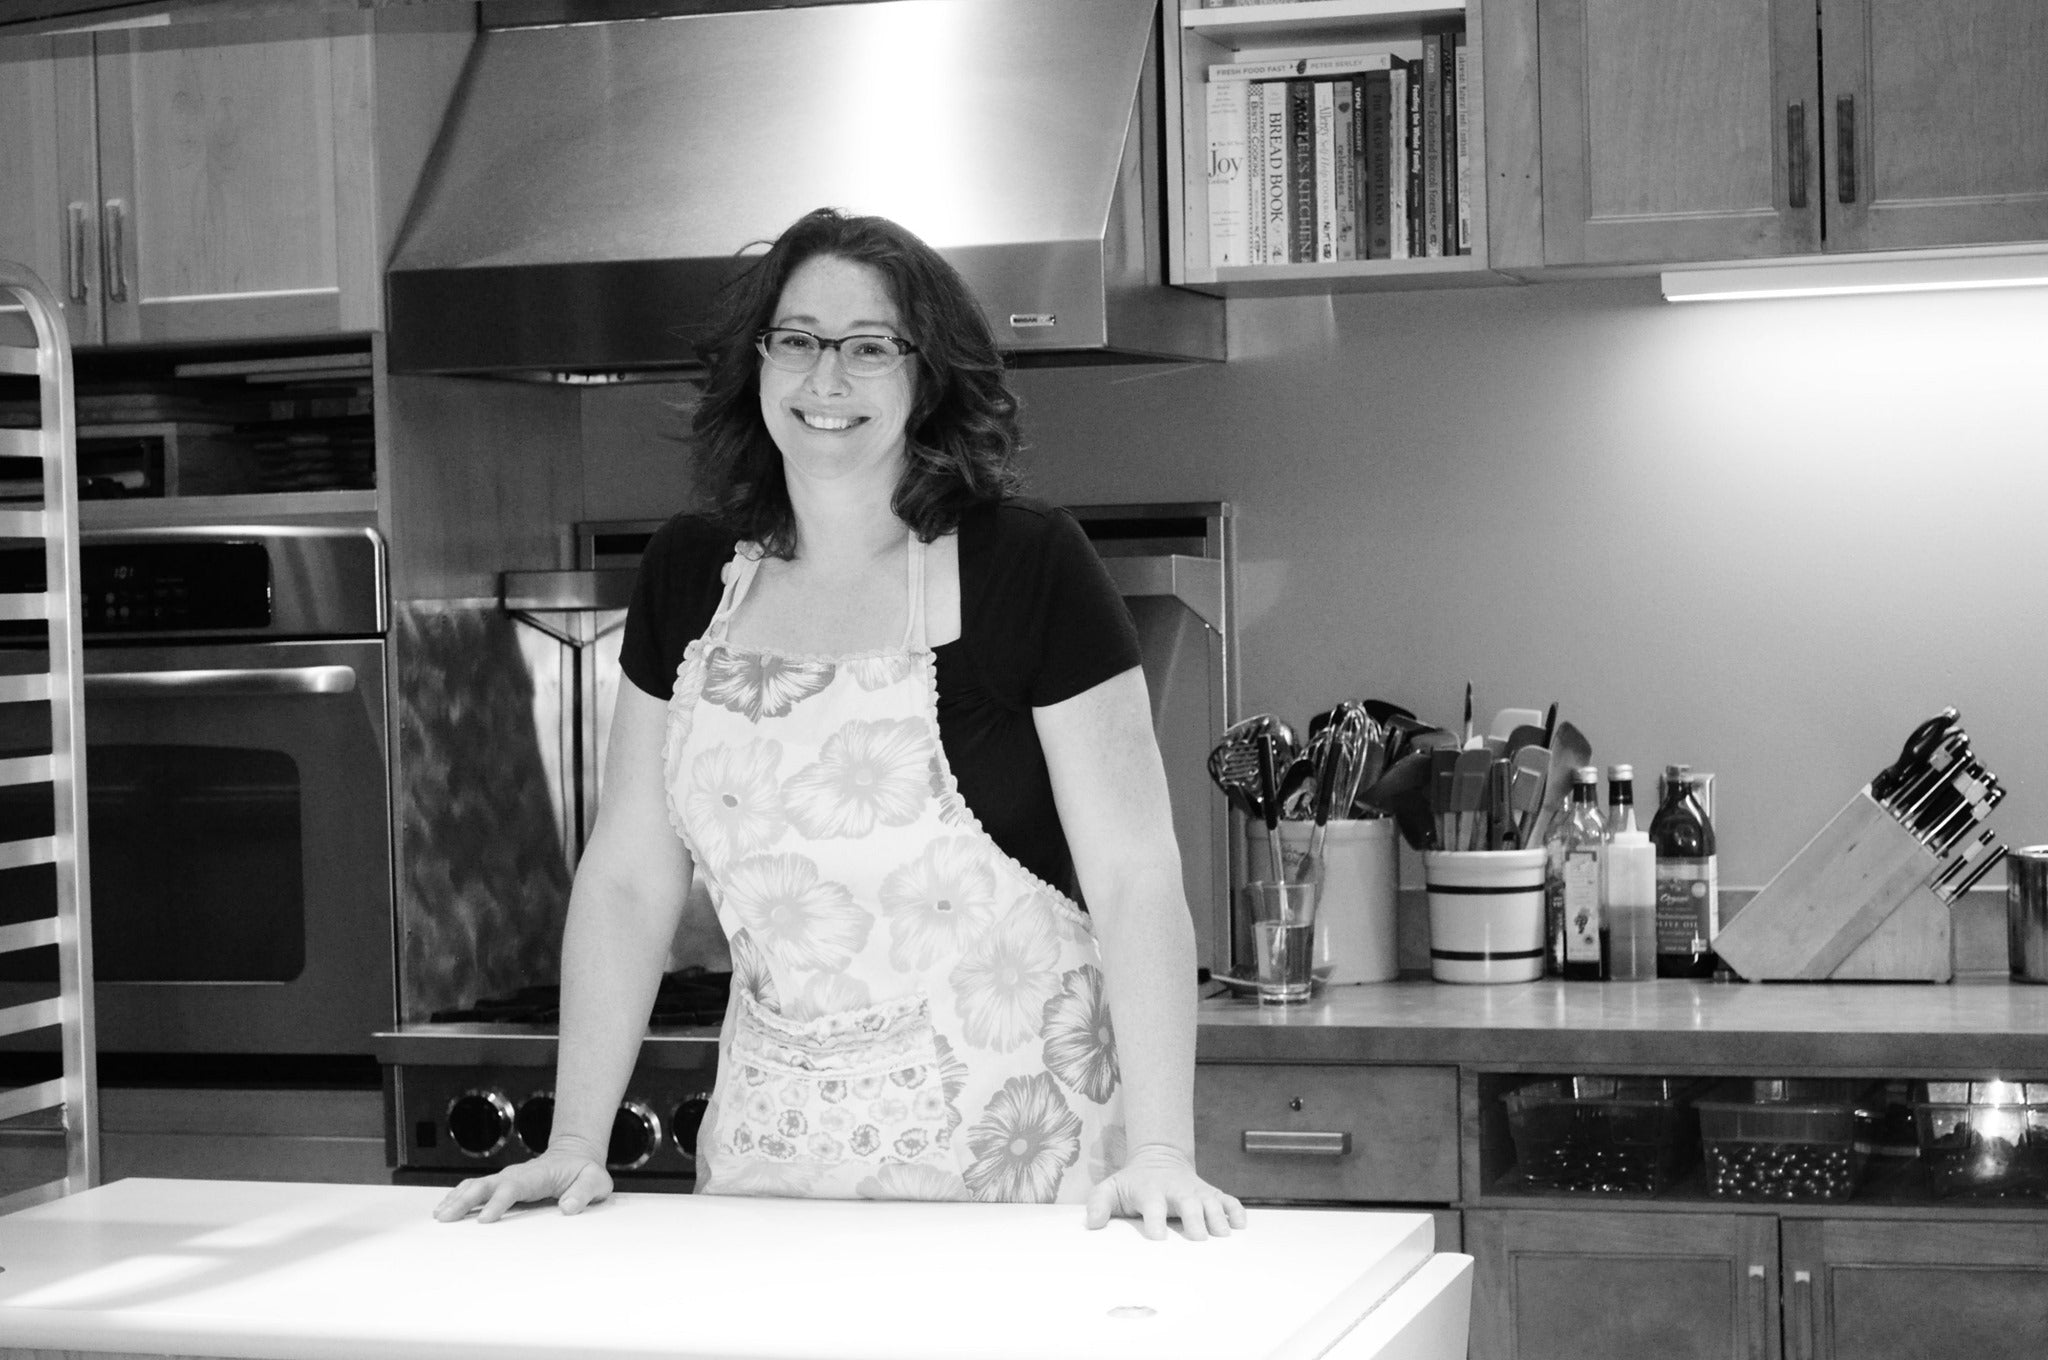 Online Class - Vegetarian Cooking with Chef Raven Naramore